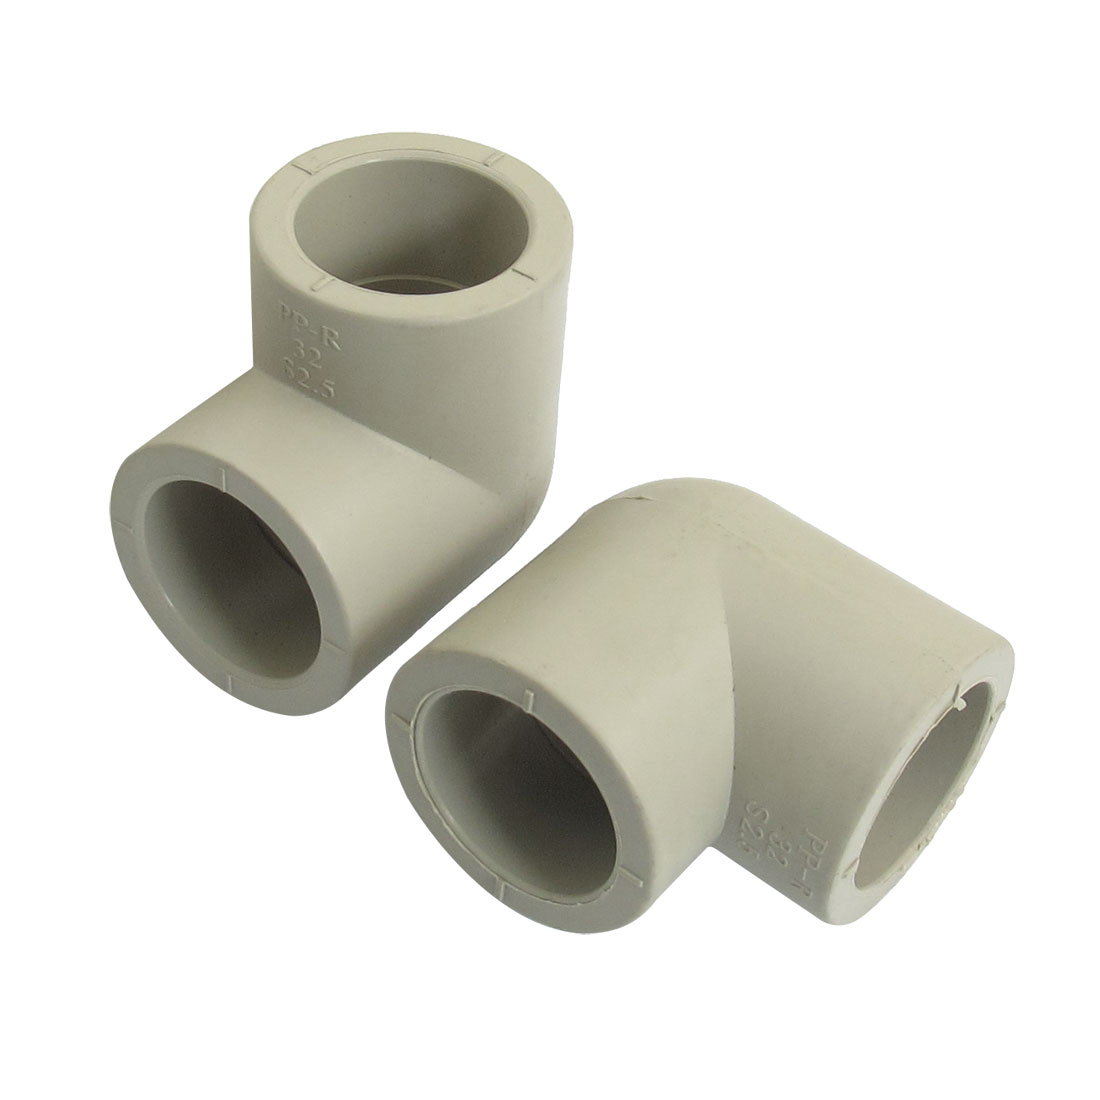 "1"" Hole PPR Drainage Pipe Adapter Elbow Connectors Fittings 2pcs"